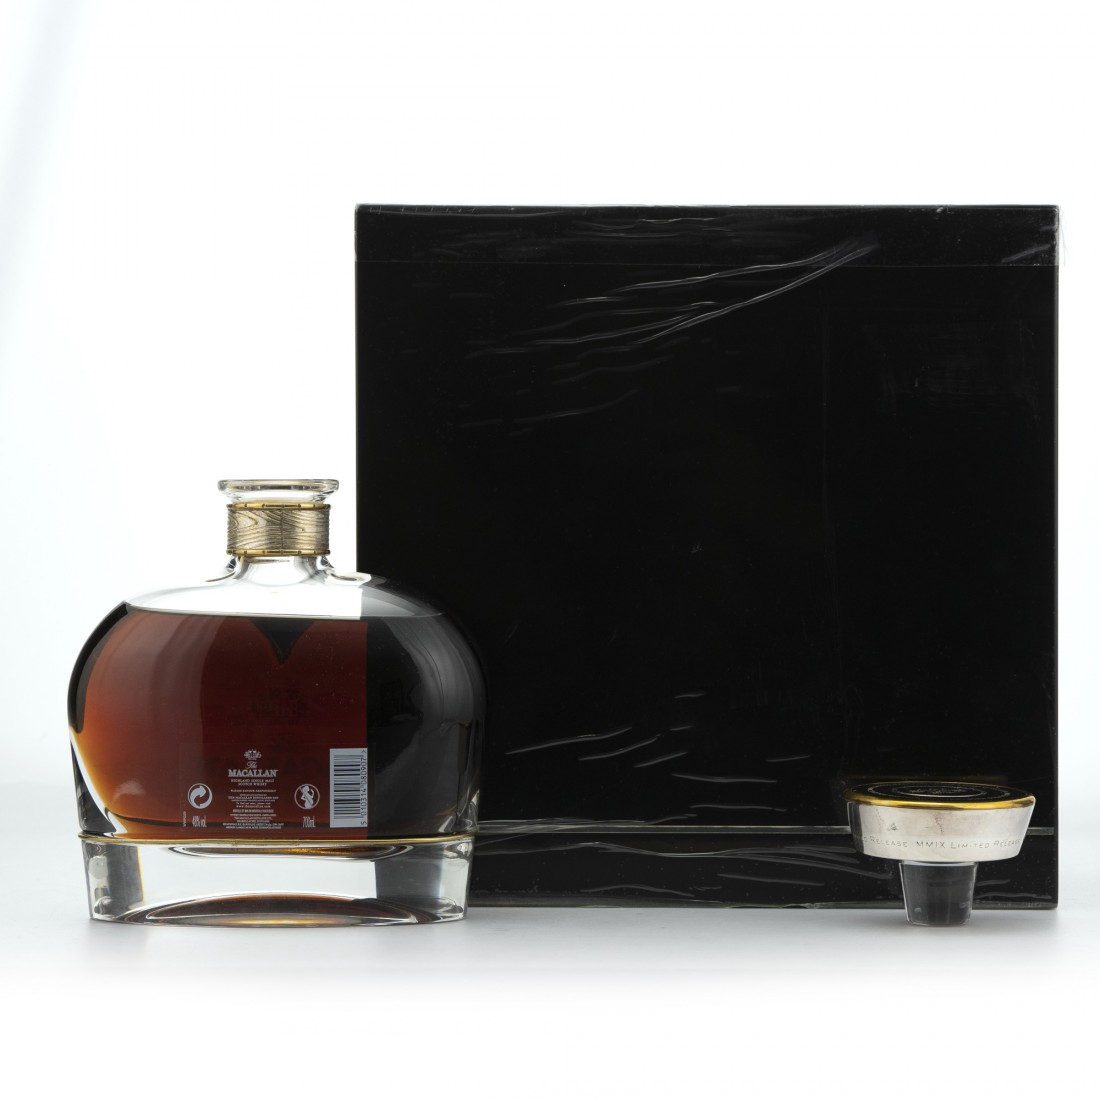 Macallan 1824 Collection Decanter 2009 Release